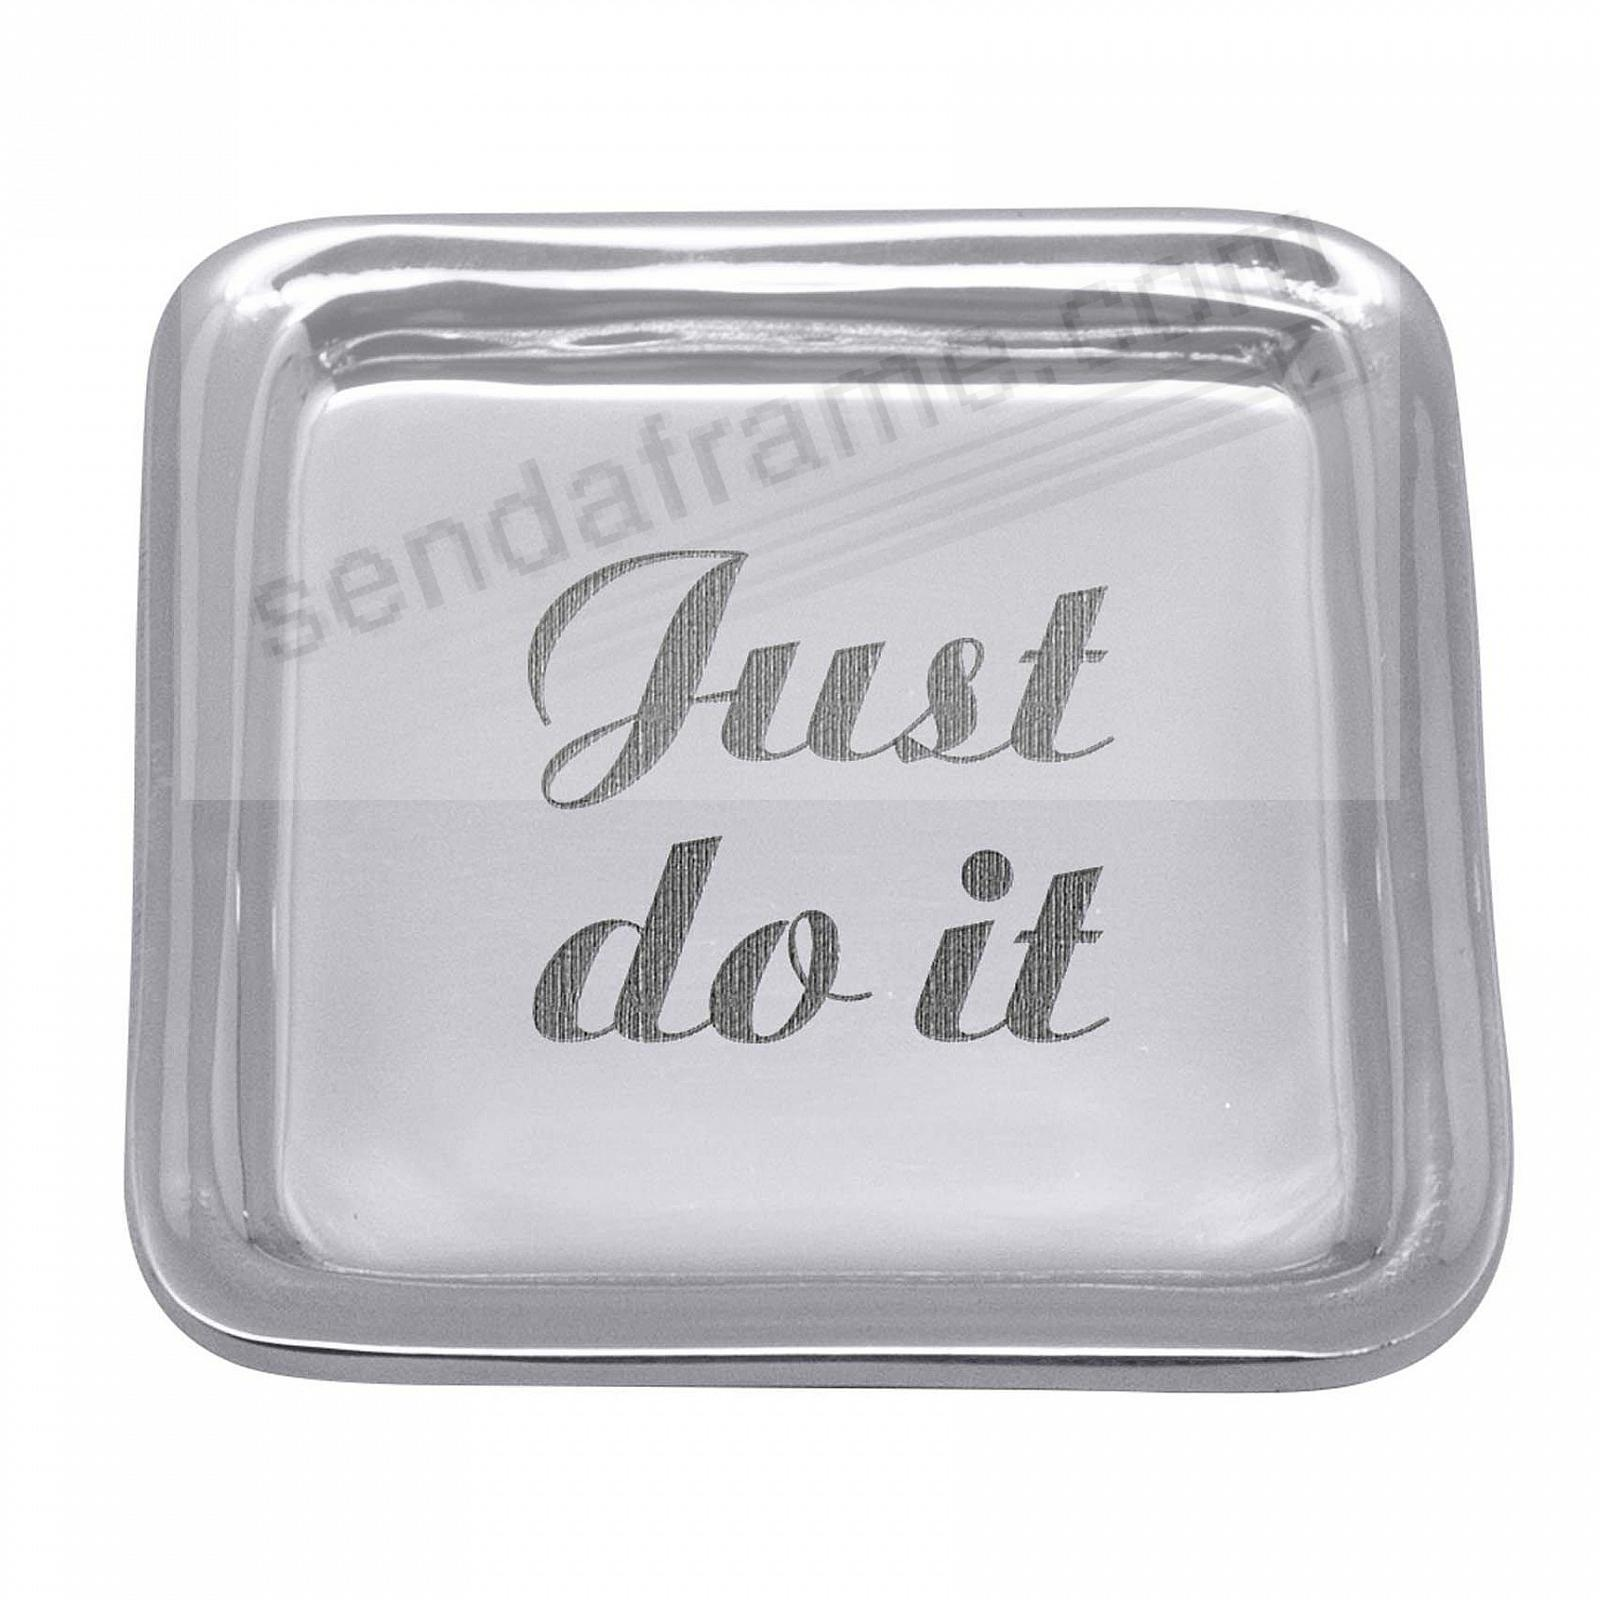 JUST DO IT SIGNATURE POST-IT Note Holder by Mariposa®